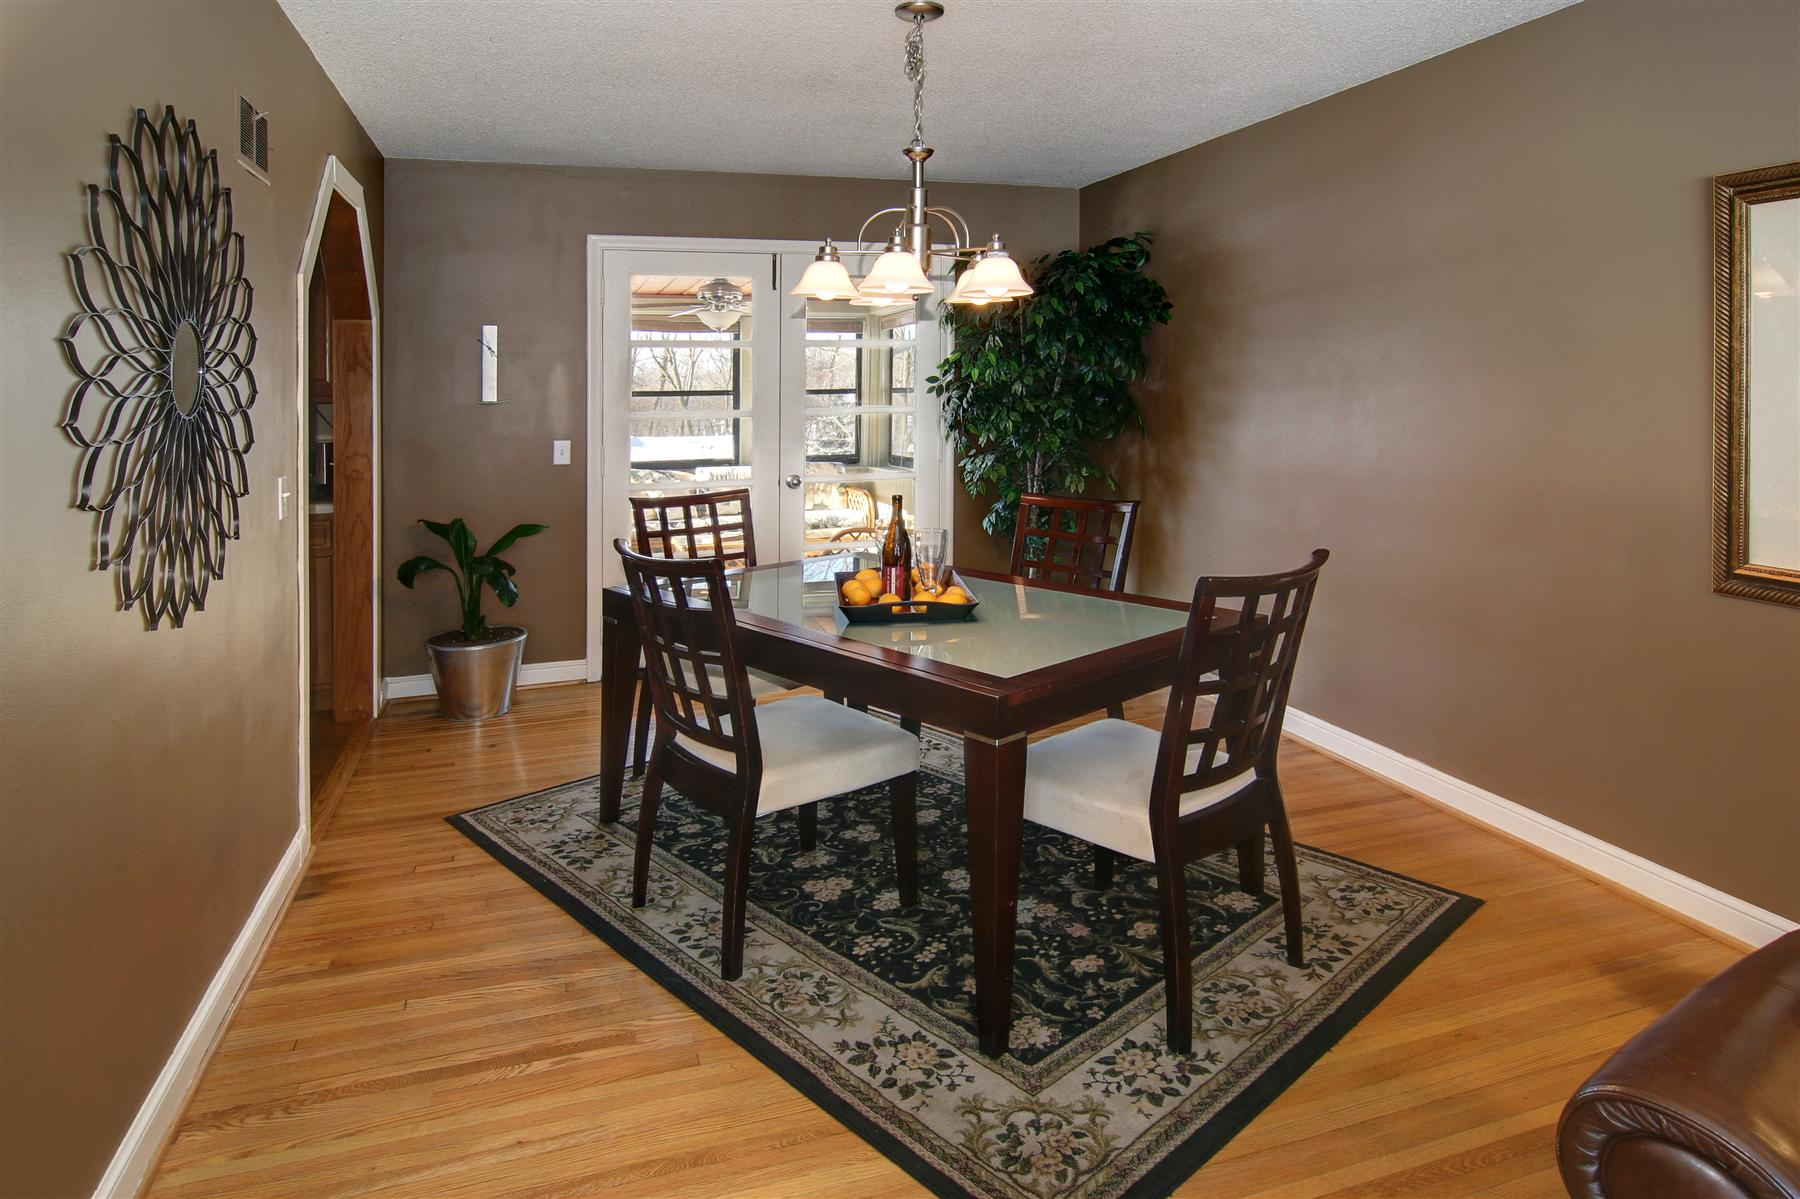 Dining Room Carpet Ideas dining room carpet ideas photo of exemplary carpet in dining room dining room carpet modern Jewel